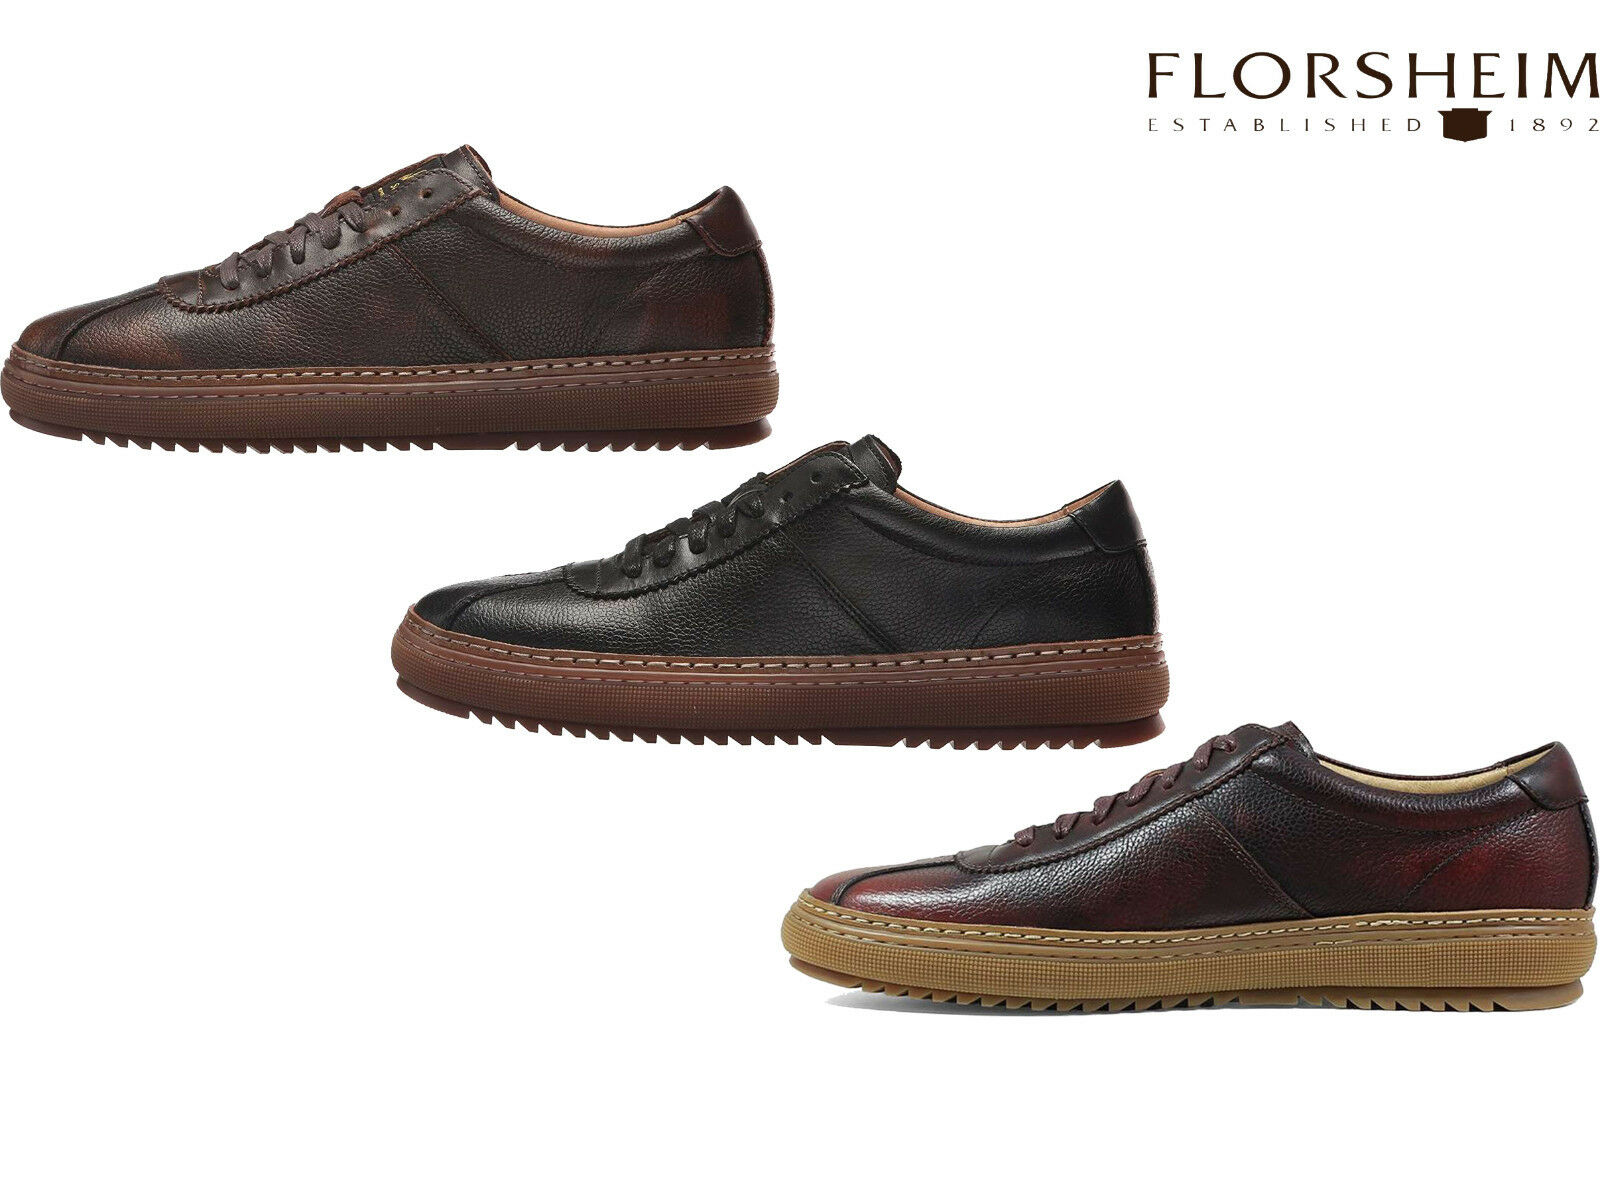 Florsheim Crew Low Lace Up Casual Sneakers Mens Oxford shoes Florsheim 15142 NEW